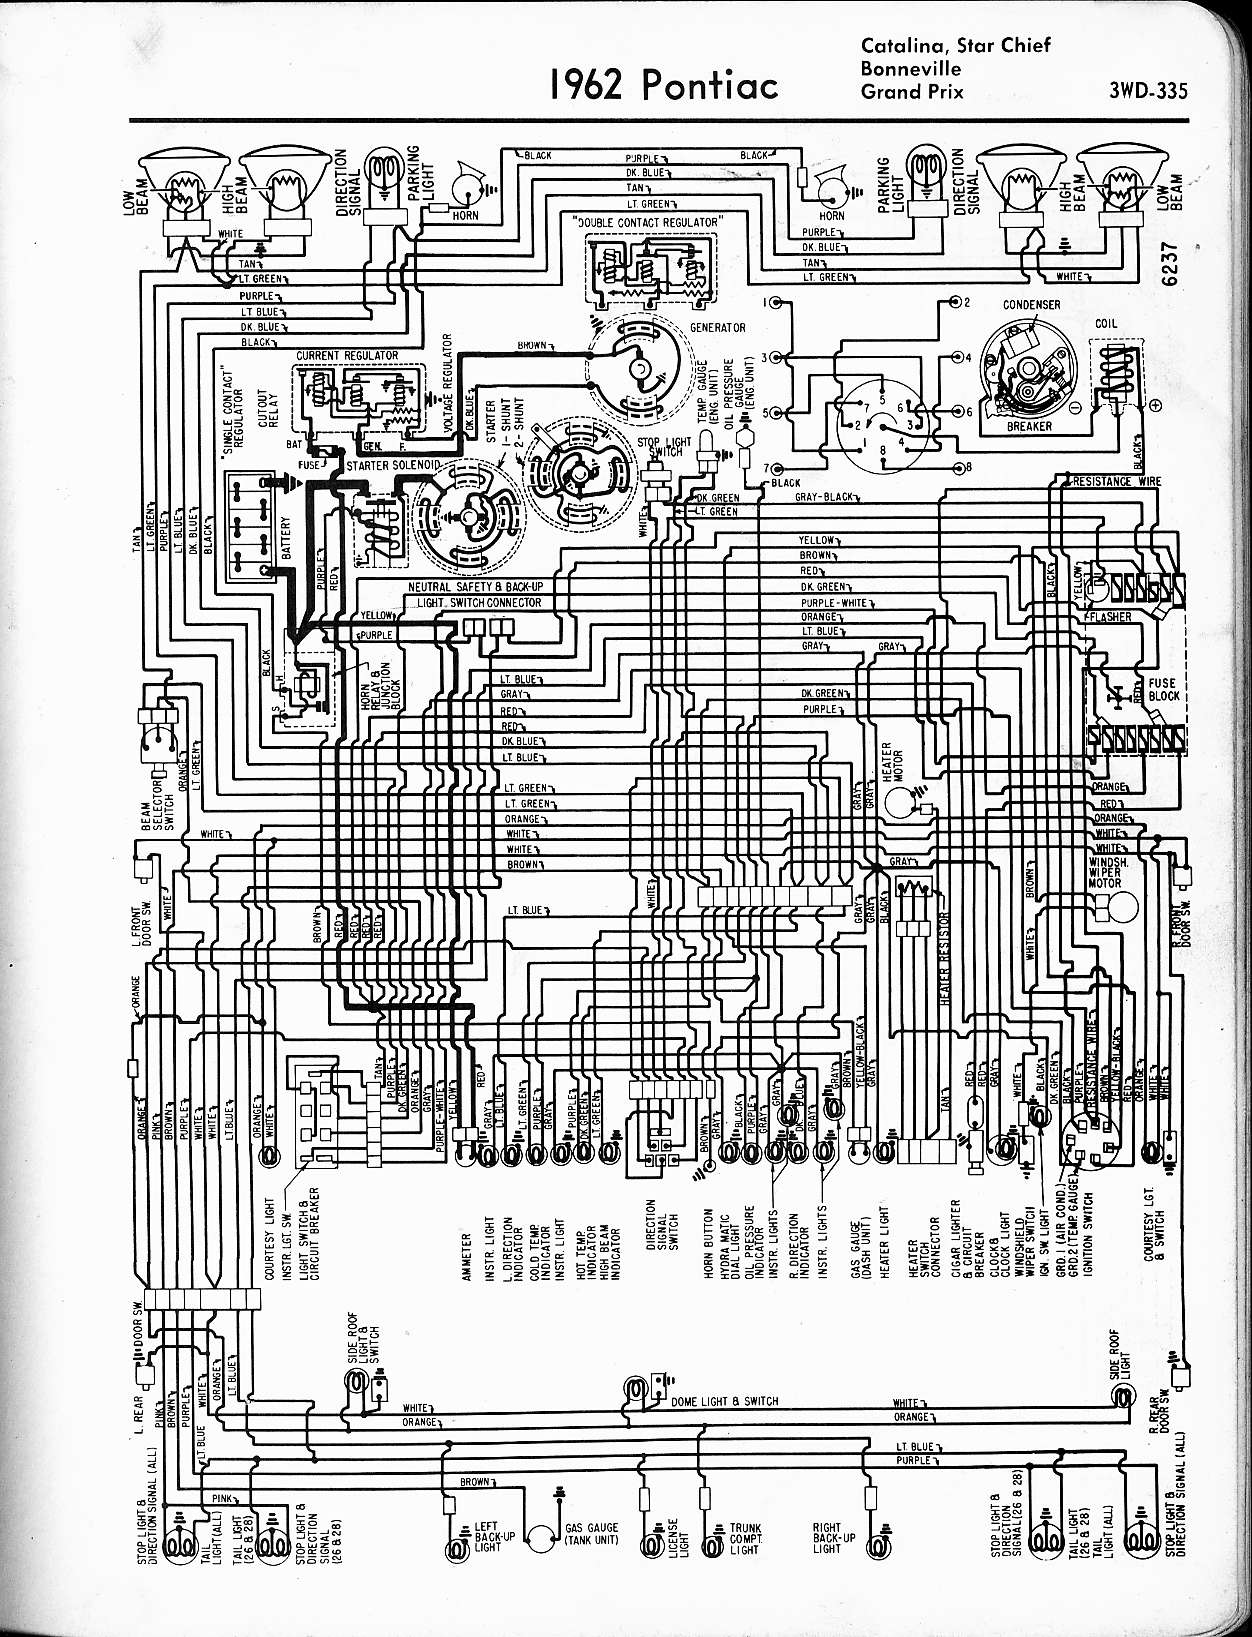 1969 Pontiac Wiring Diagram Another Blog About 69 C10 Guage Amp Wallace Racing Diagrams Rh Wallaceracing Com Grand Prix Bonneville